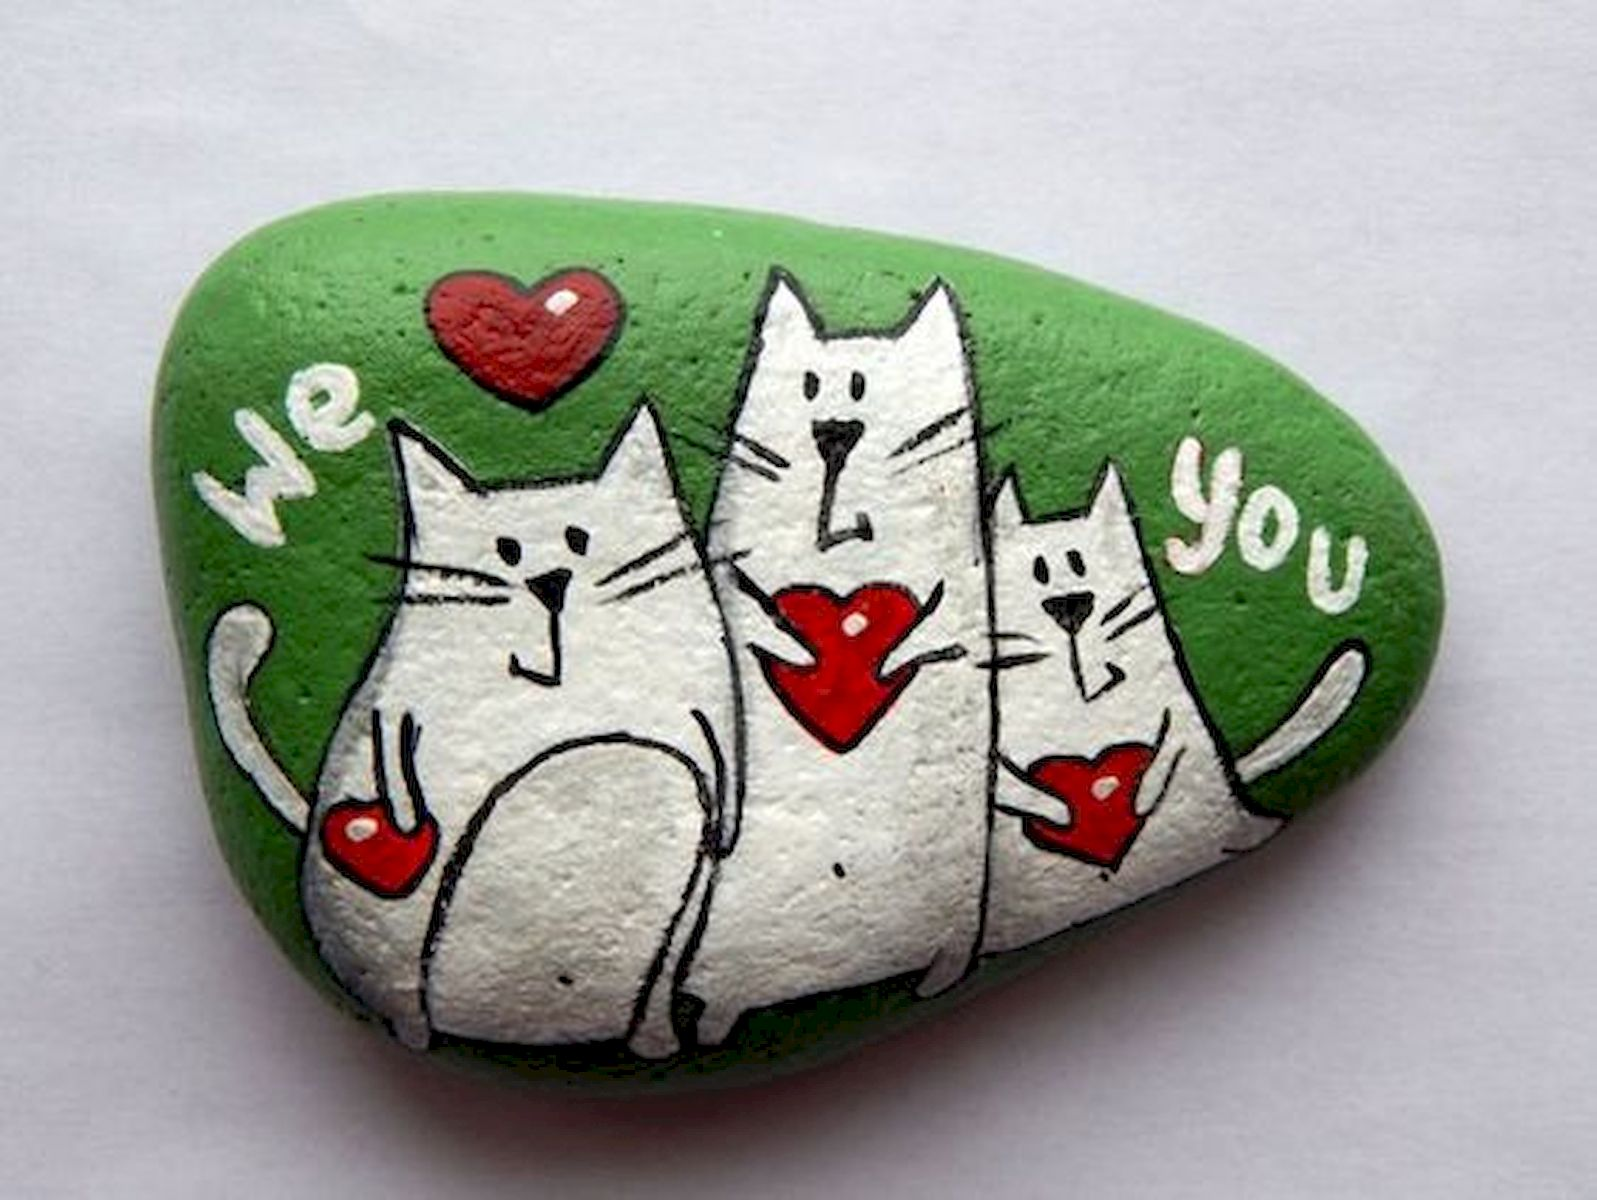 52 Best DIY Painted Rocks Remodel Ideas Perfect For Beginners (96)